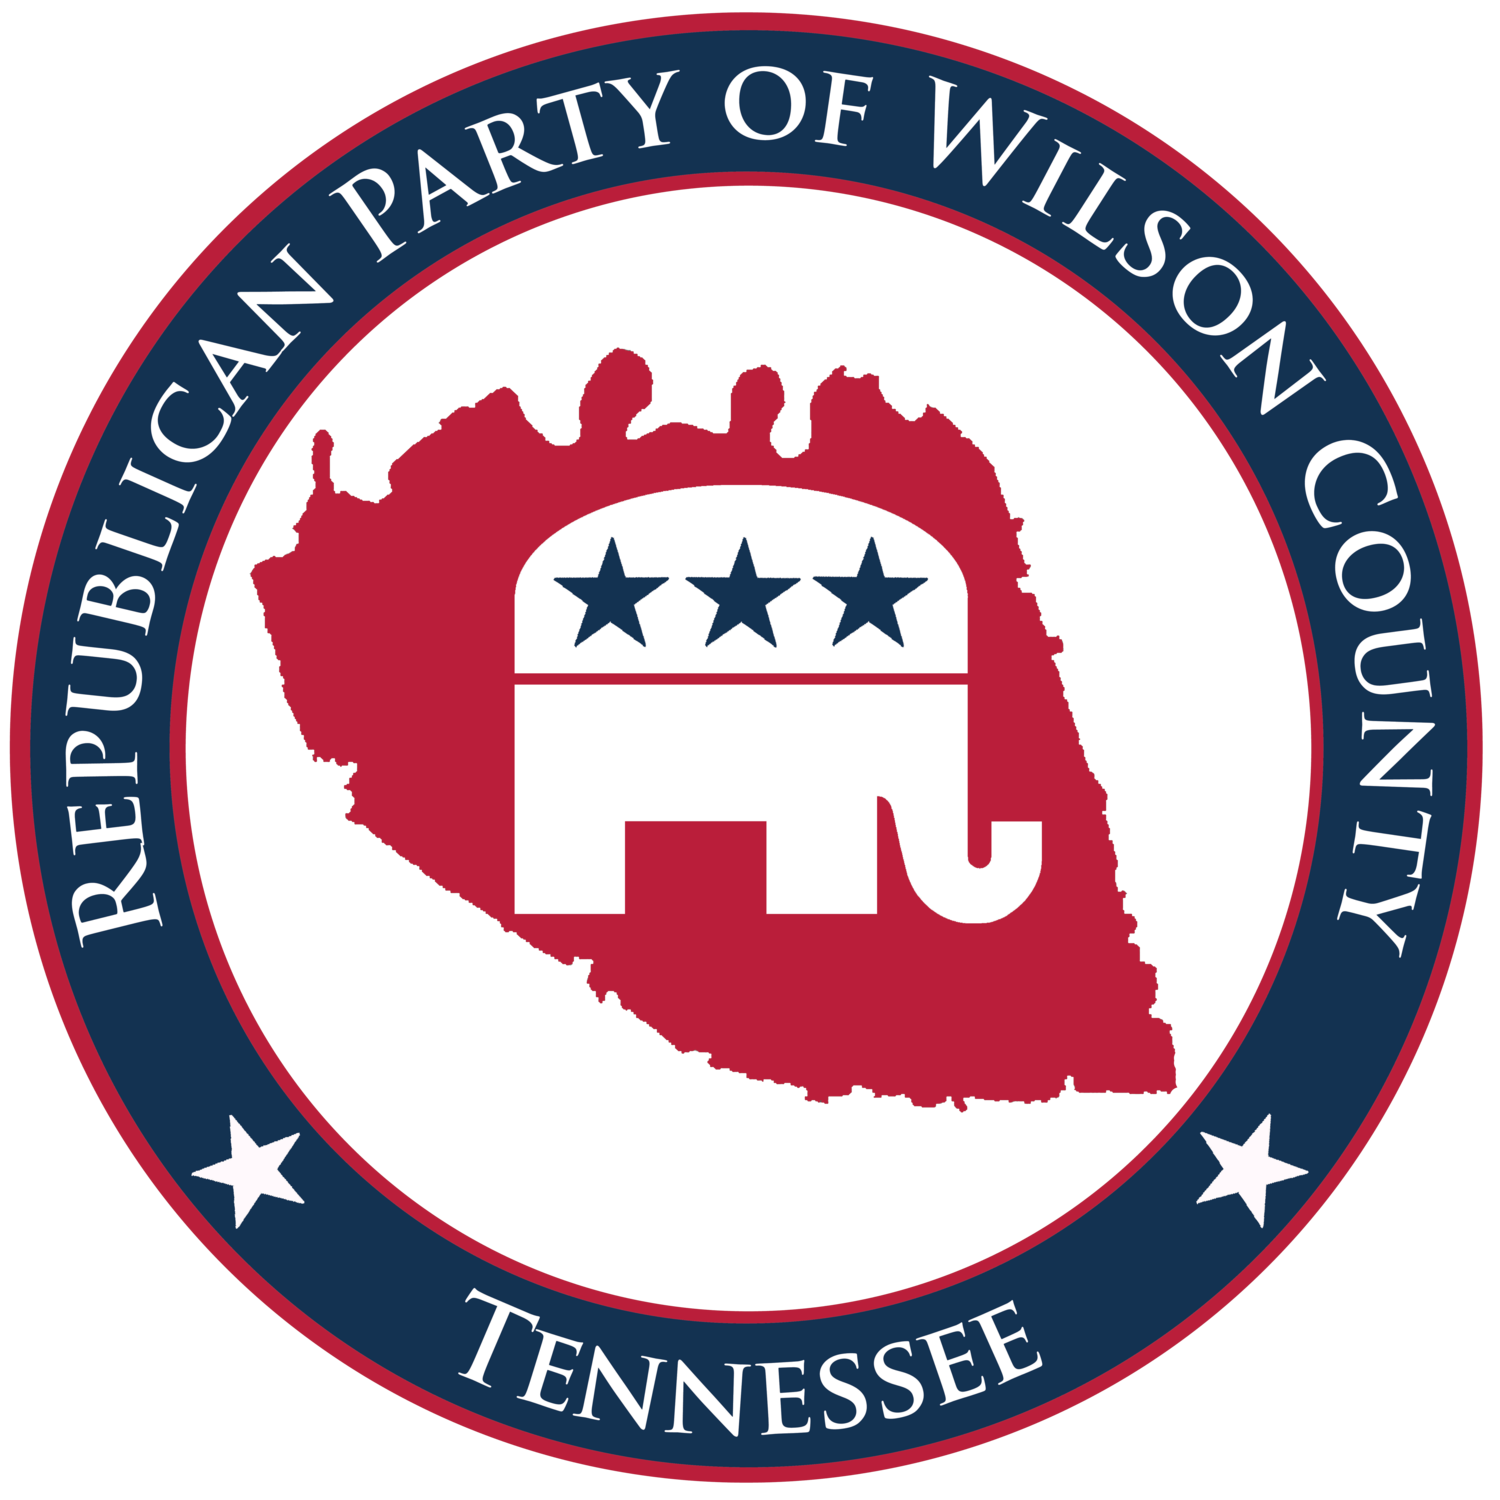 Republican Party of Wilson County, Tennessee